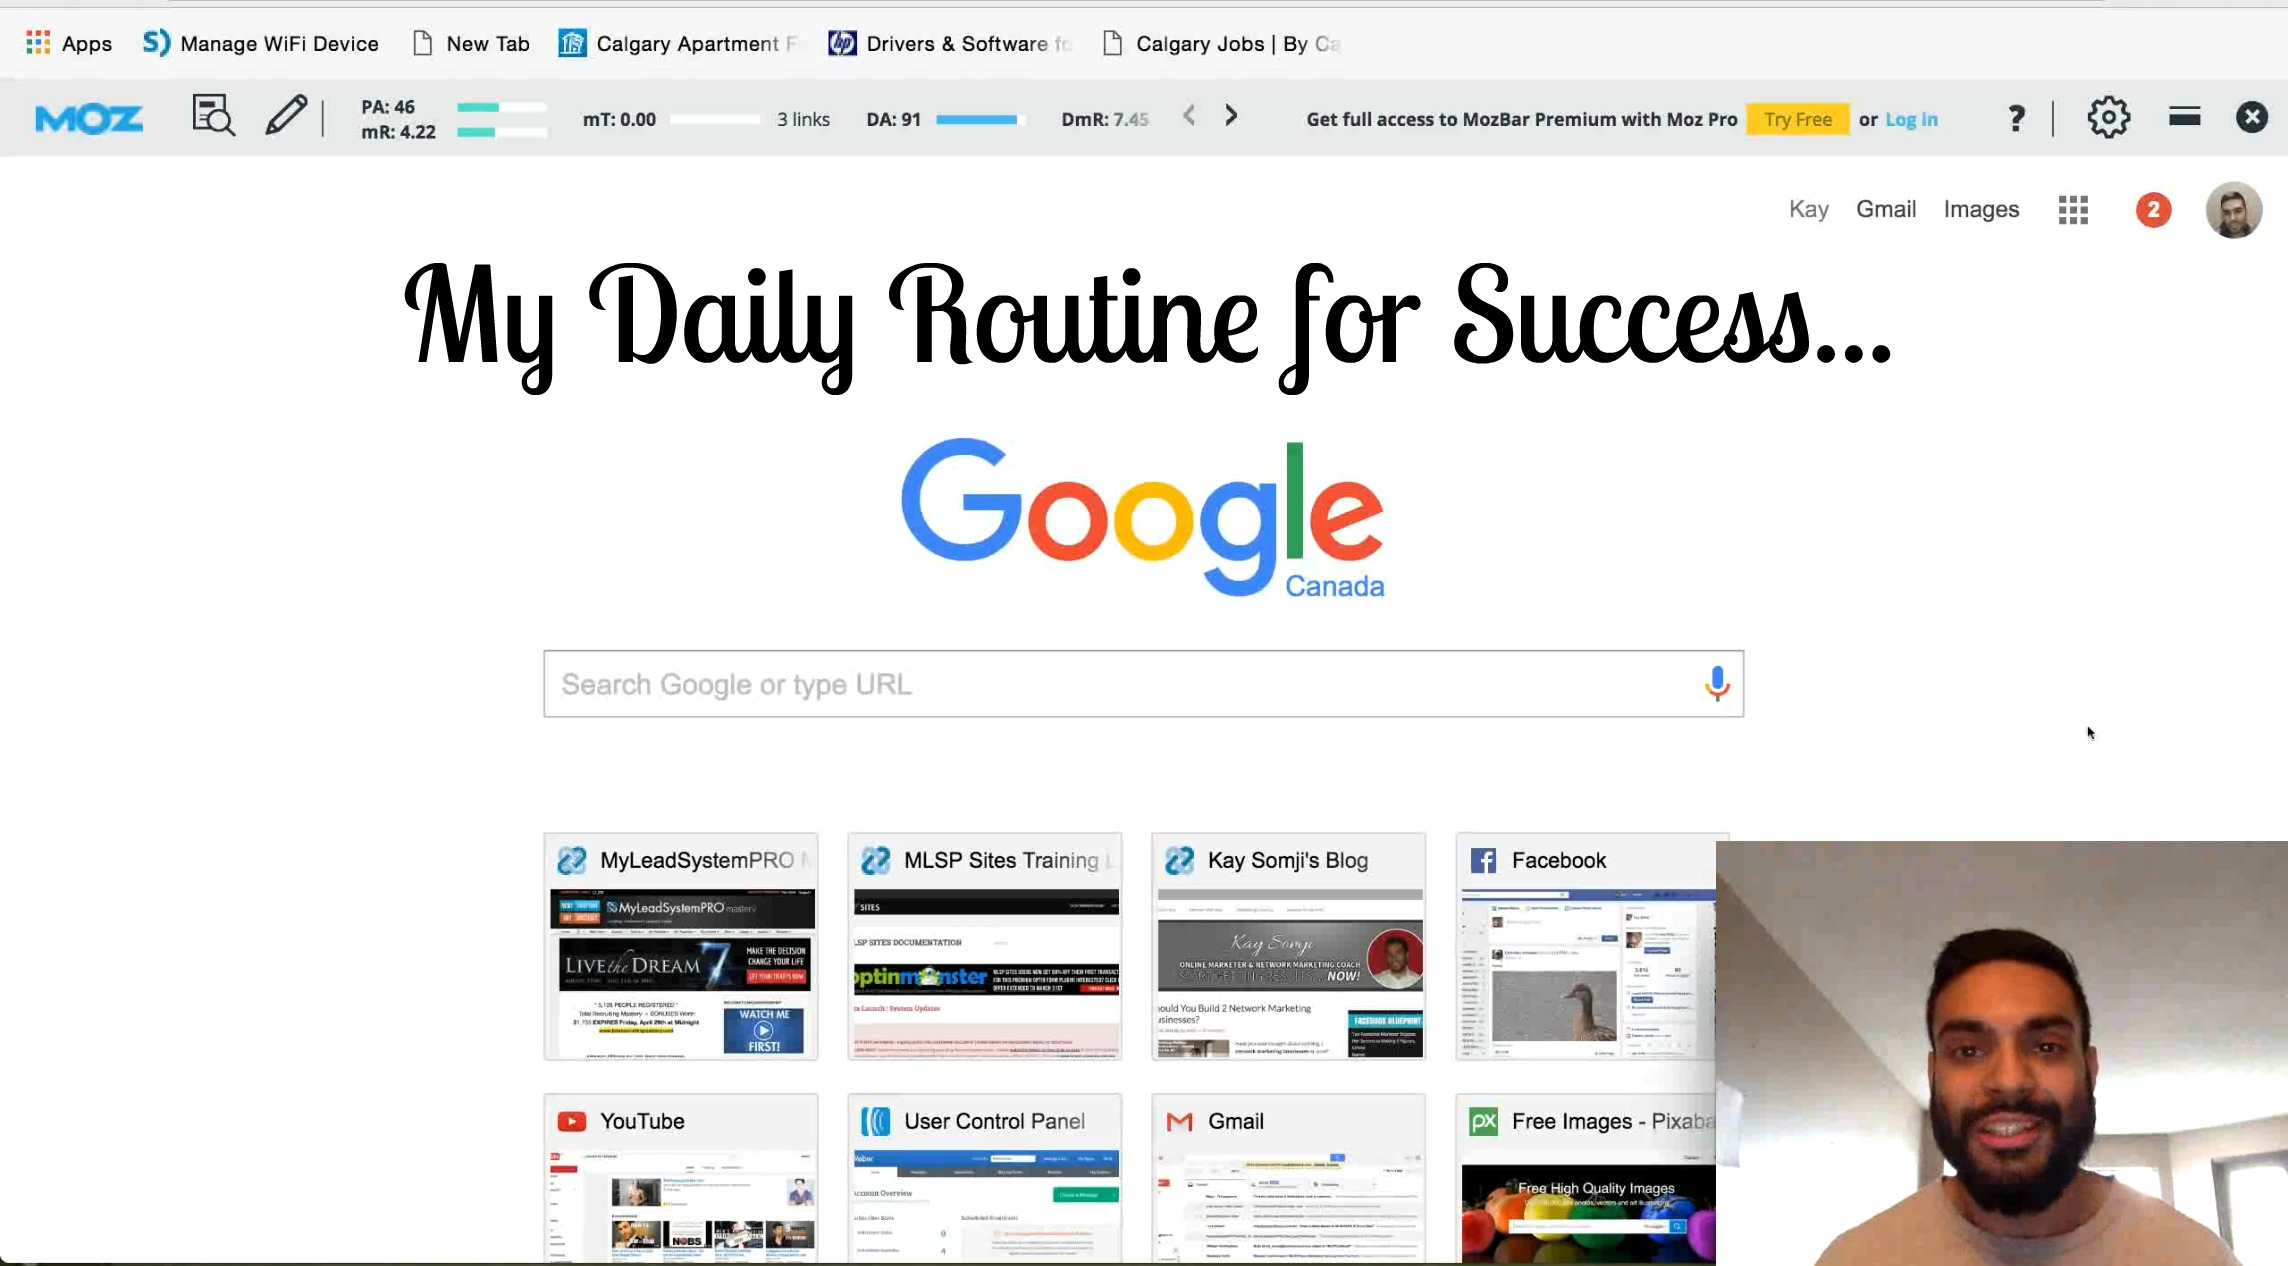 MLM Daily Routine for Proven Success